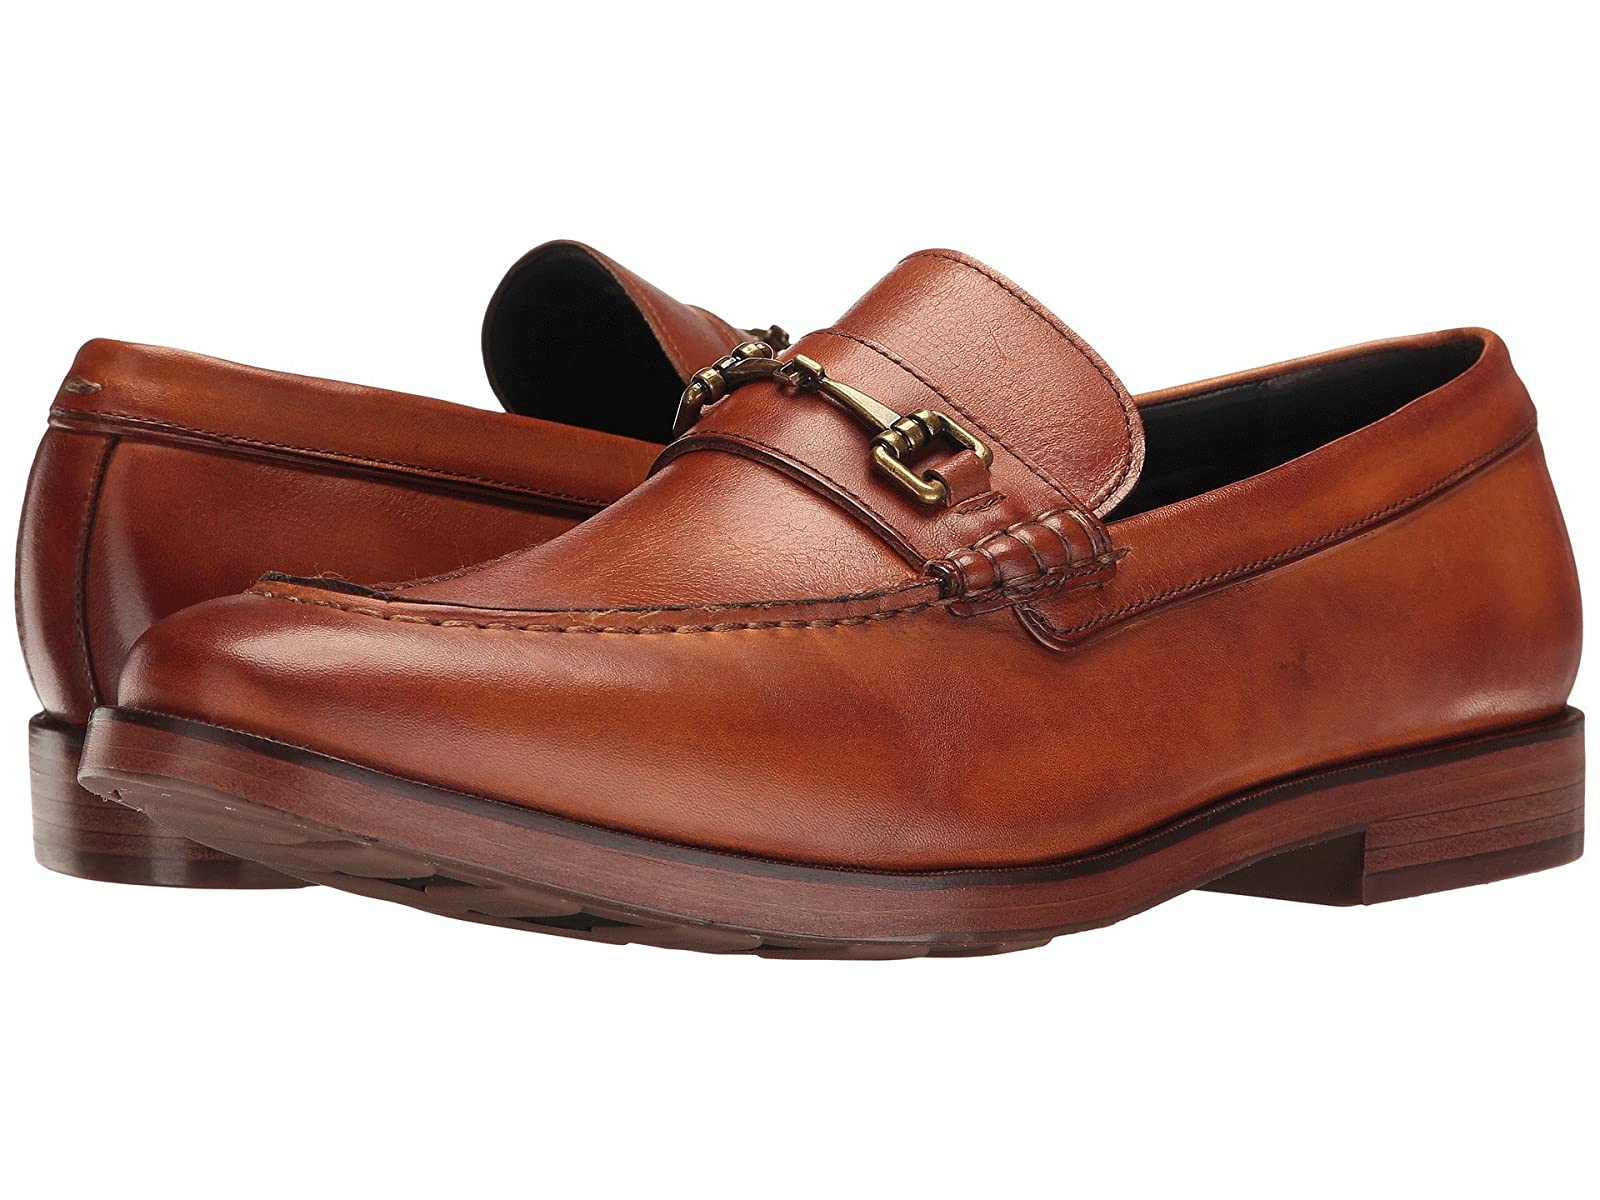 Cole Haan Hamilton Grand Bit LoaferCheap and distinctive eye-catching shoes